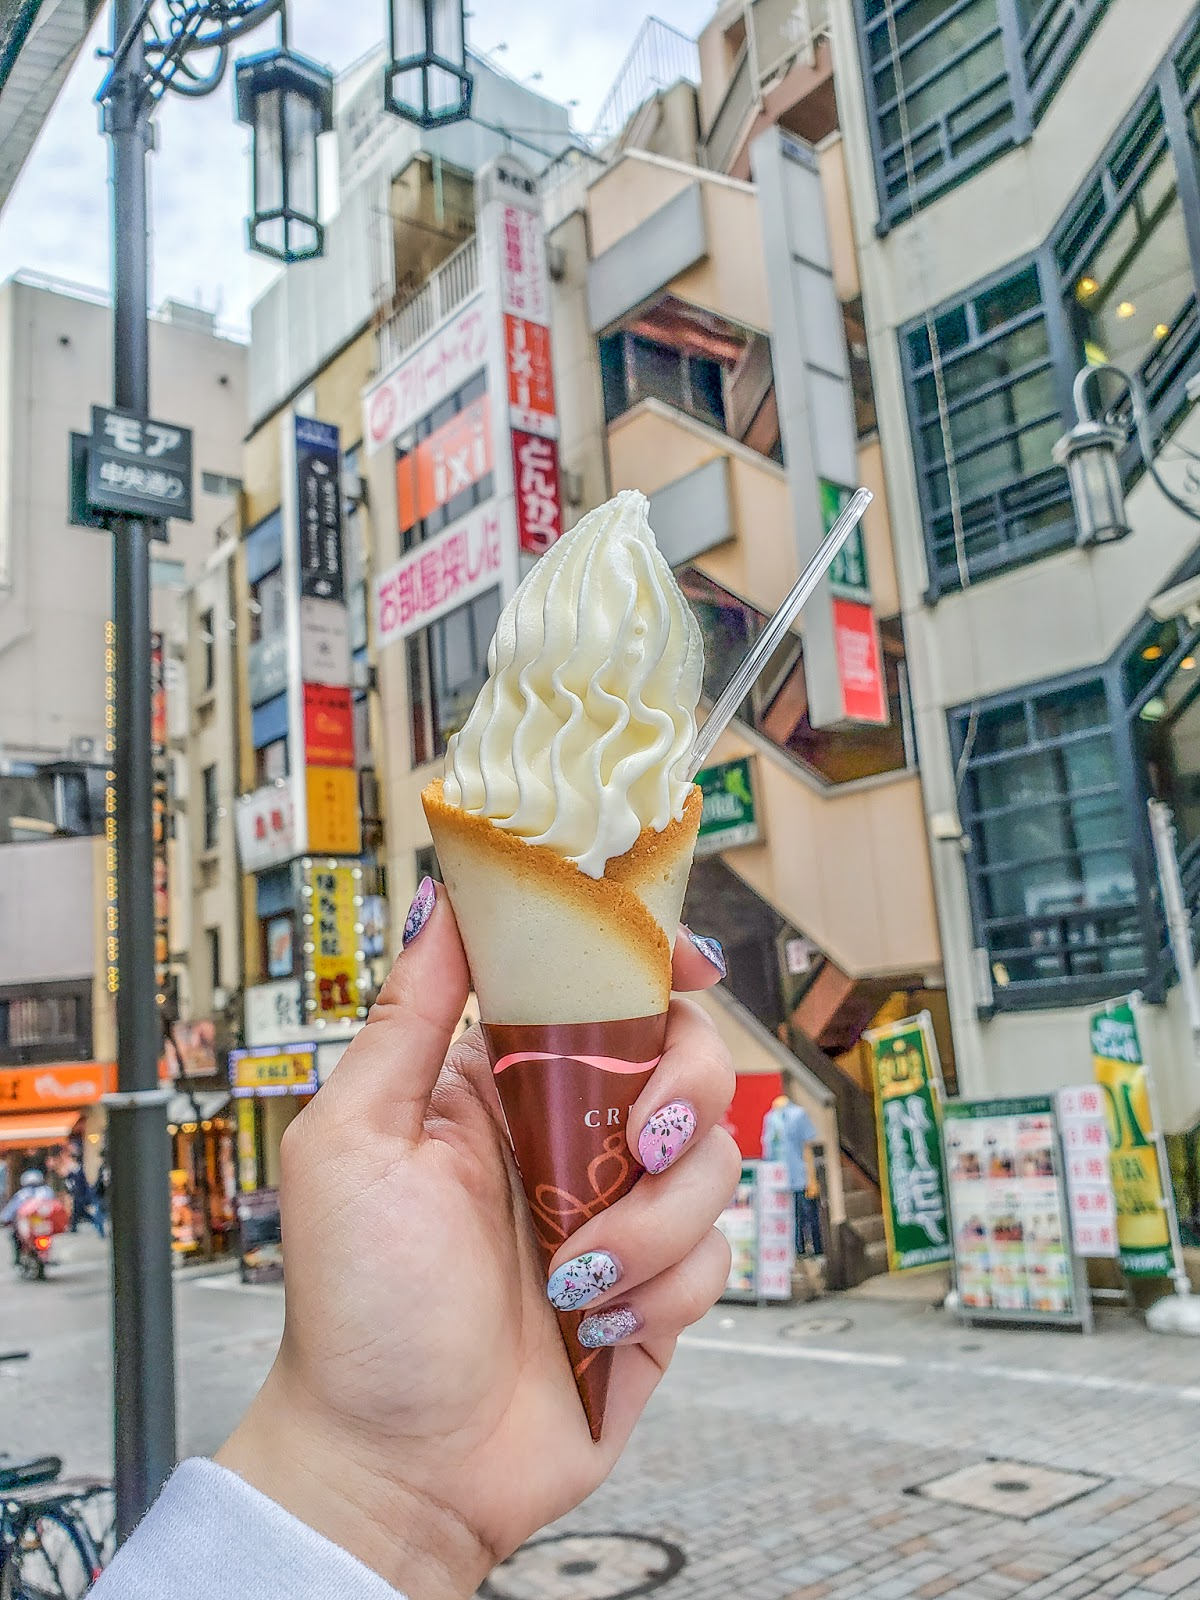 japan food foodie blogger soft serve softcream ice cream